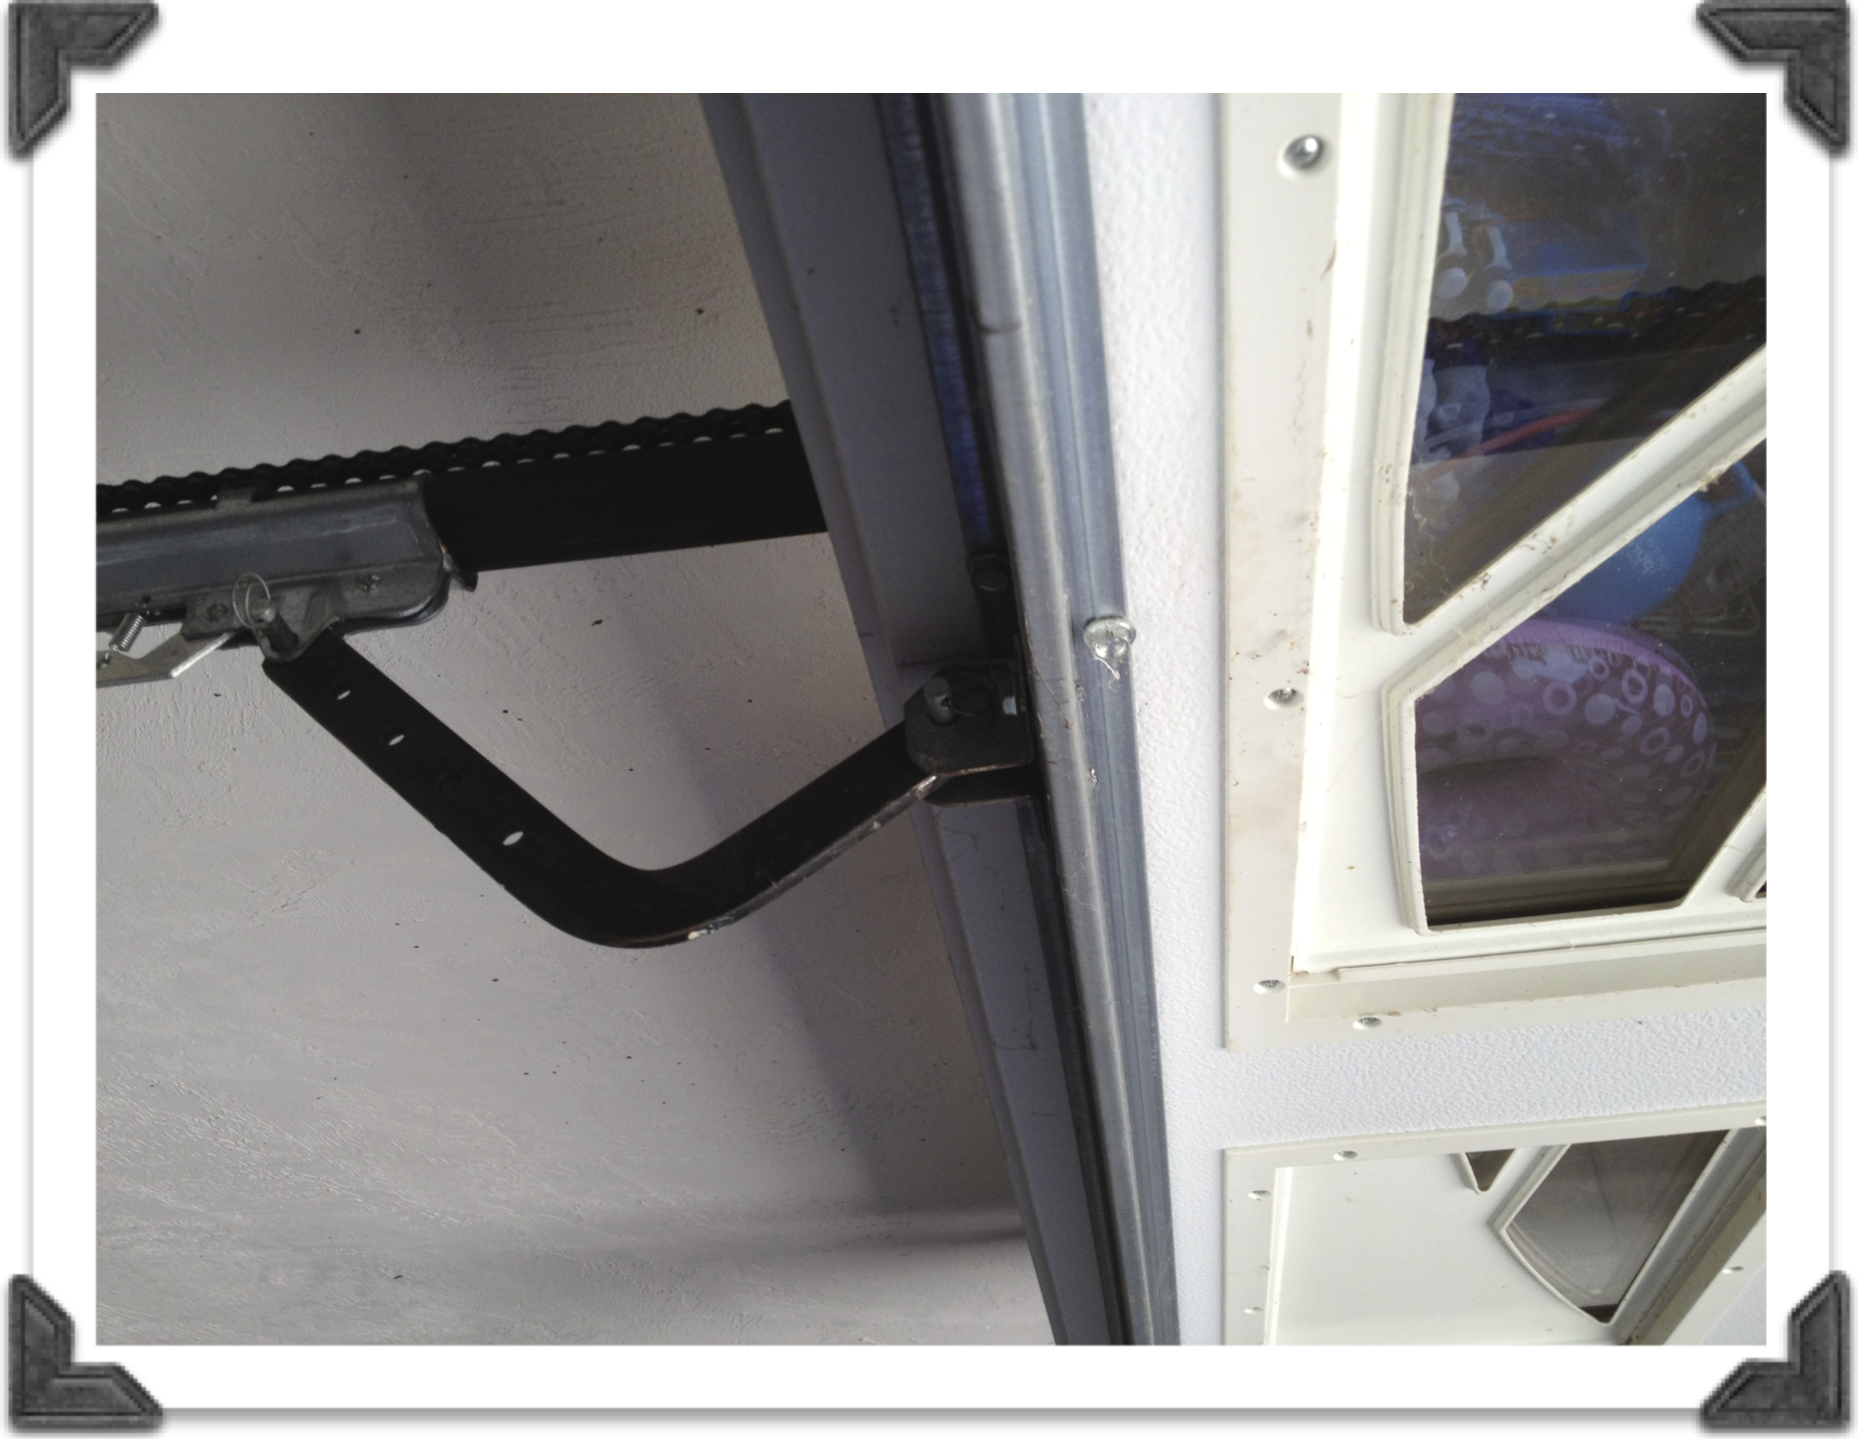 Garage Door Support Arm.png 1,858×1,439 Pixels